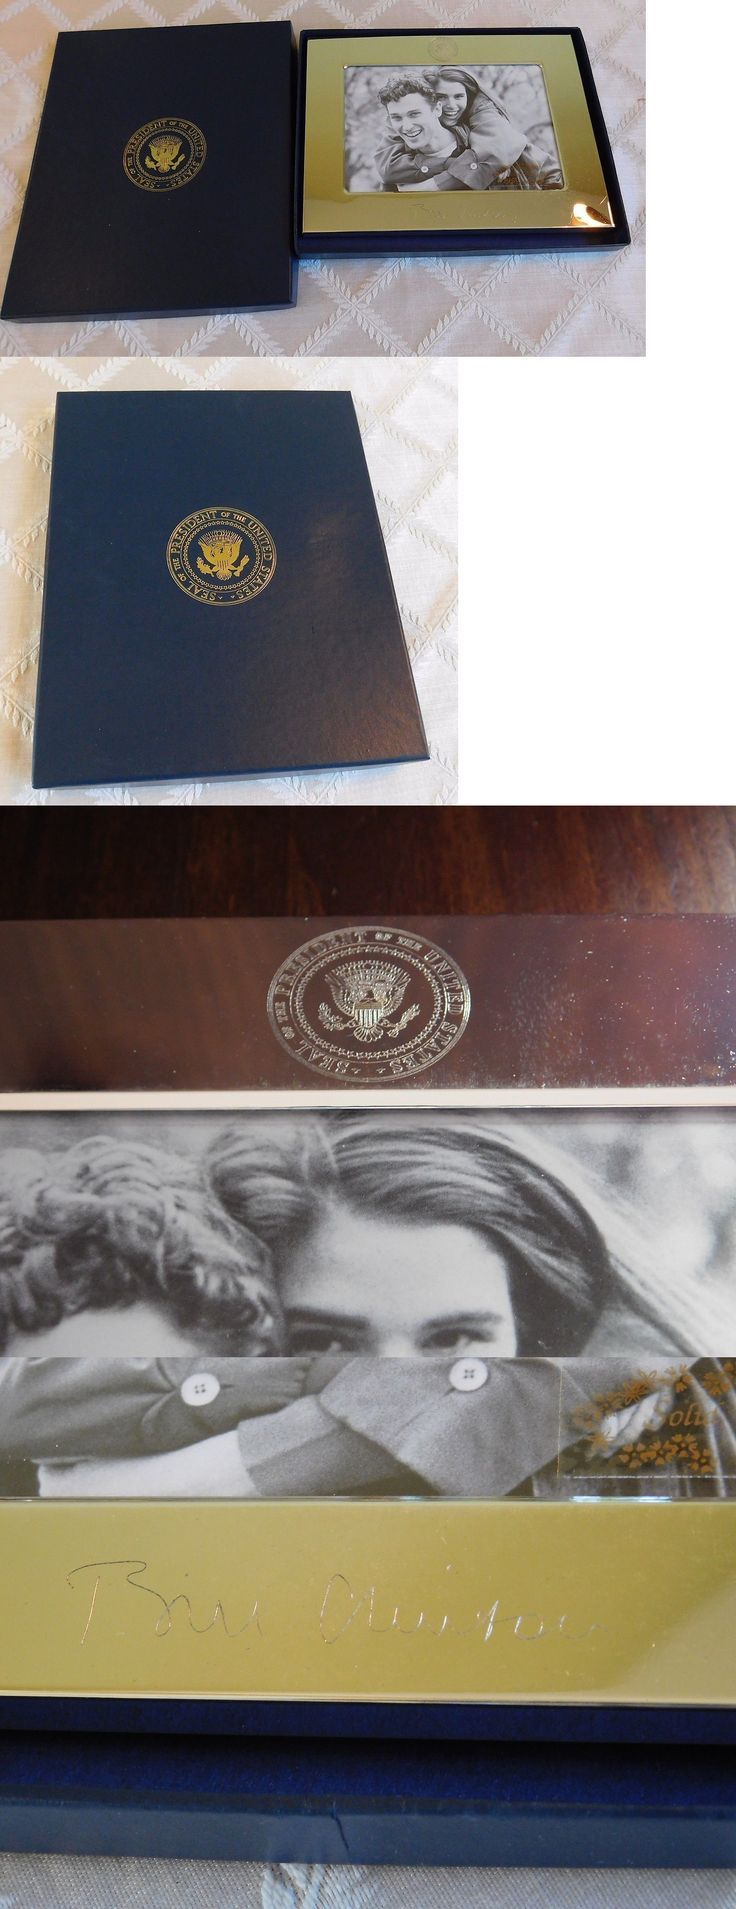 Bill Clinton: Bill Clinton Presidential Seal White House Gift Silver Picture Frame Authentic -> BUY IT NOW ONLY: $150 on eBay!